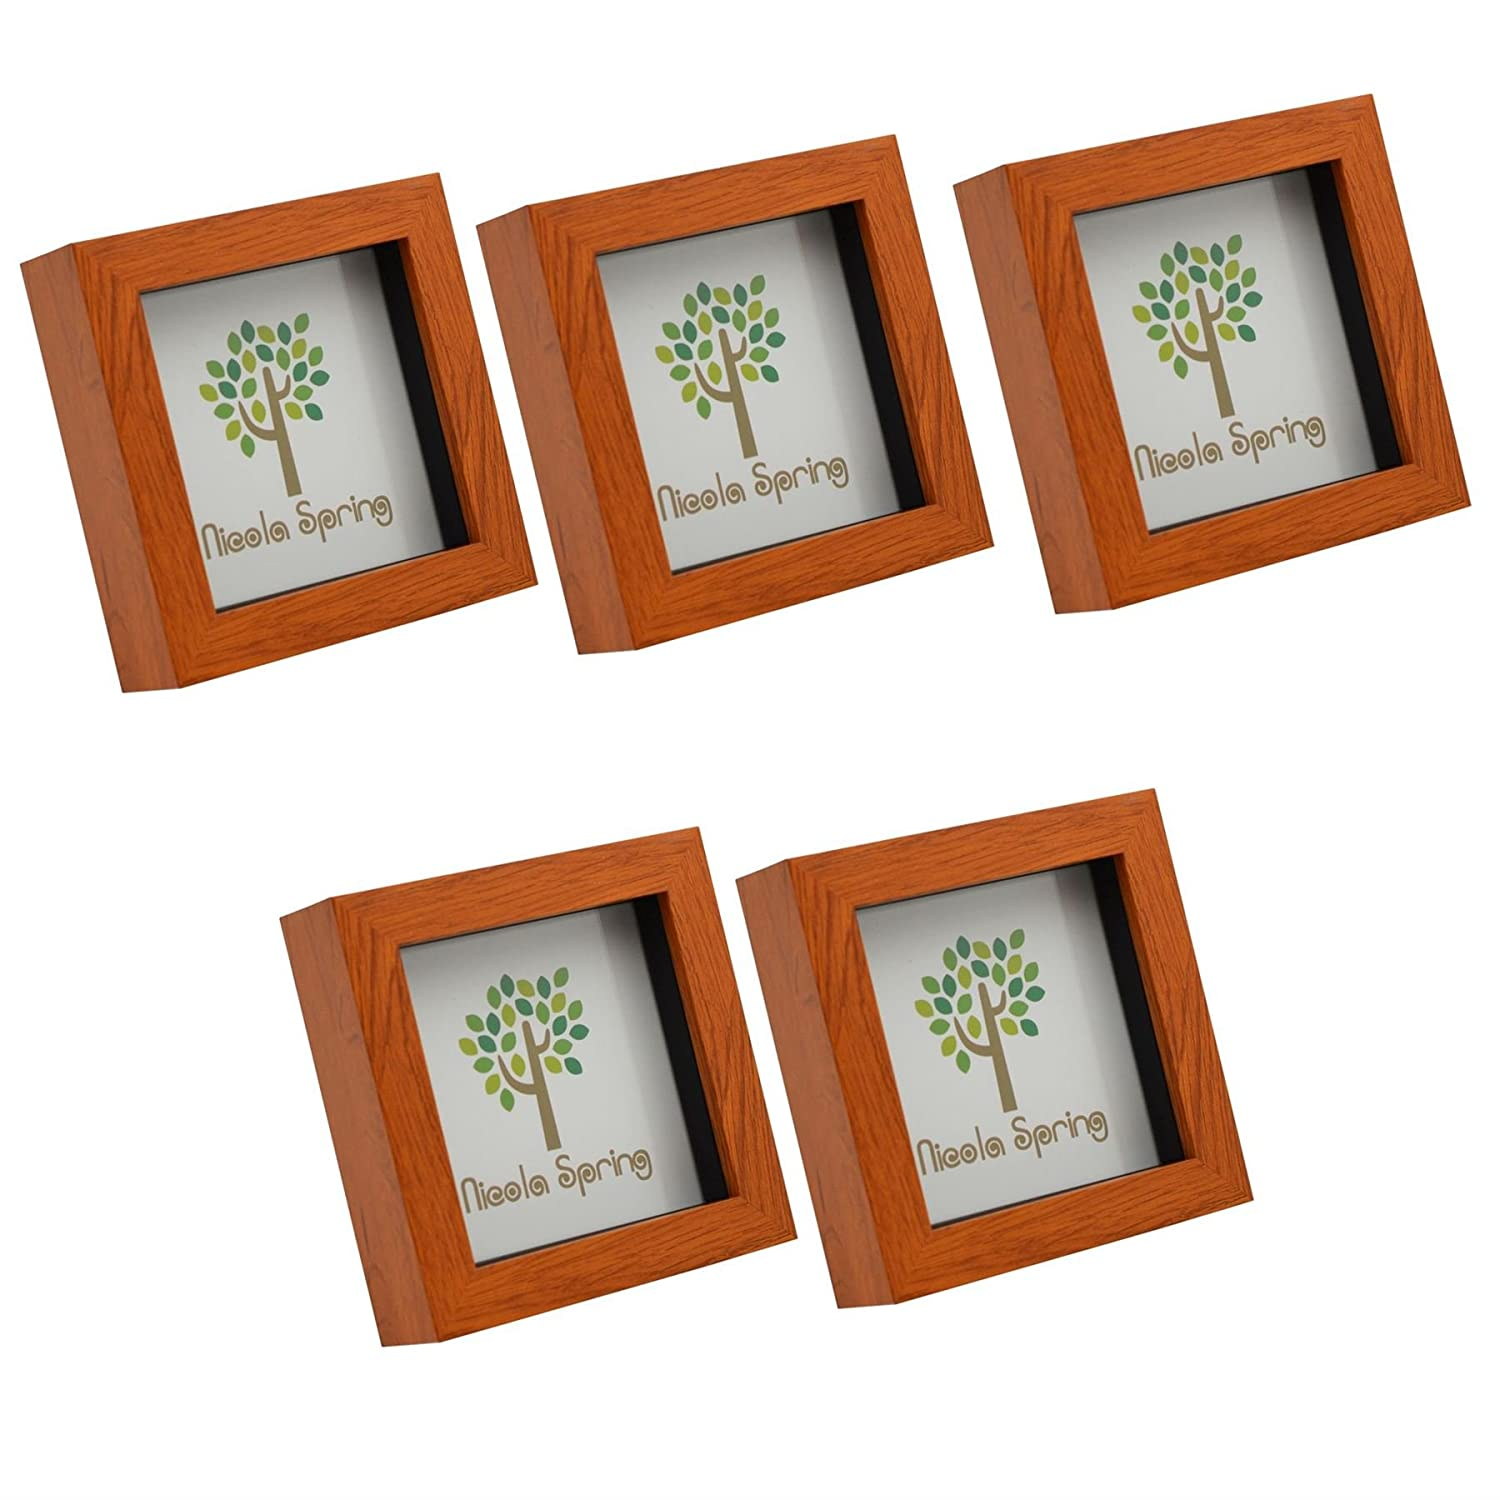 Dark Wood Effect 4x4 Box Photo Frame - Standing & Hanging - Pack of 5 Nicola Spring